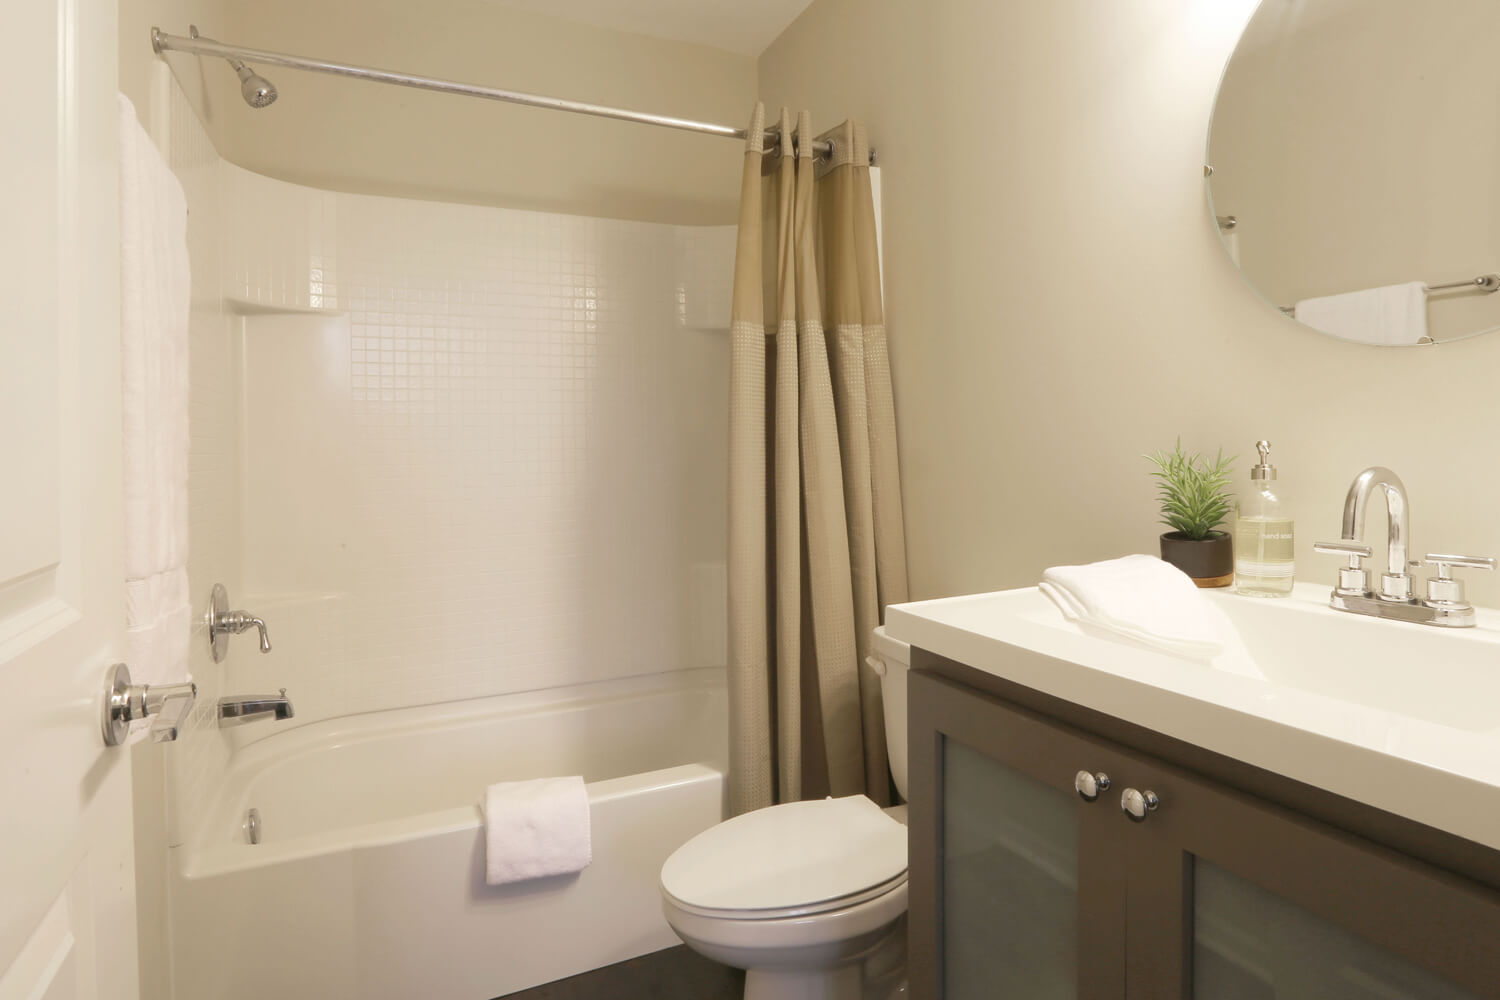 The 40 Four Building Designed by Foshee Architecture – Apartment Bathroom